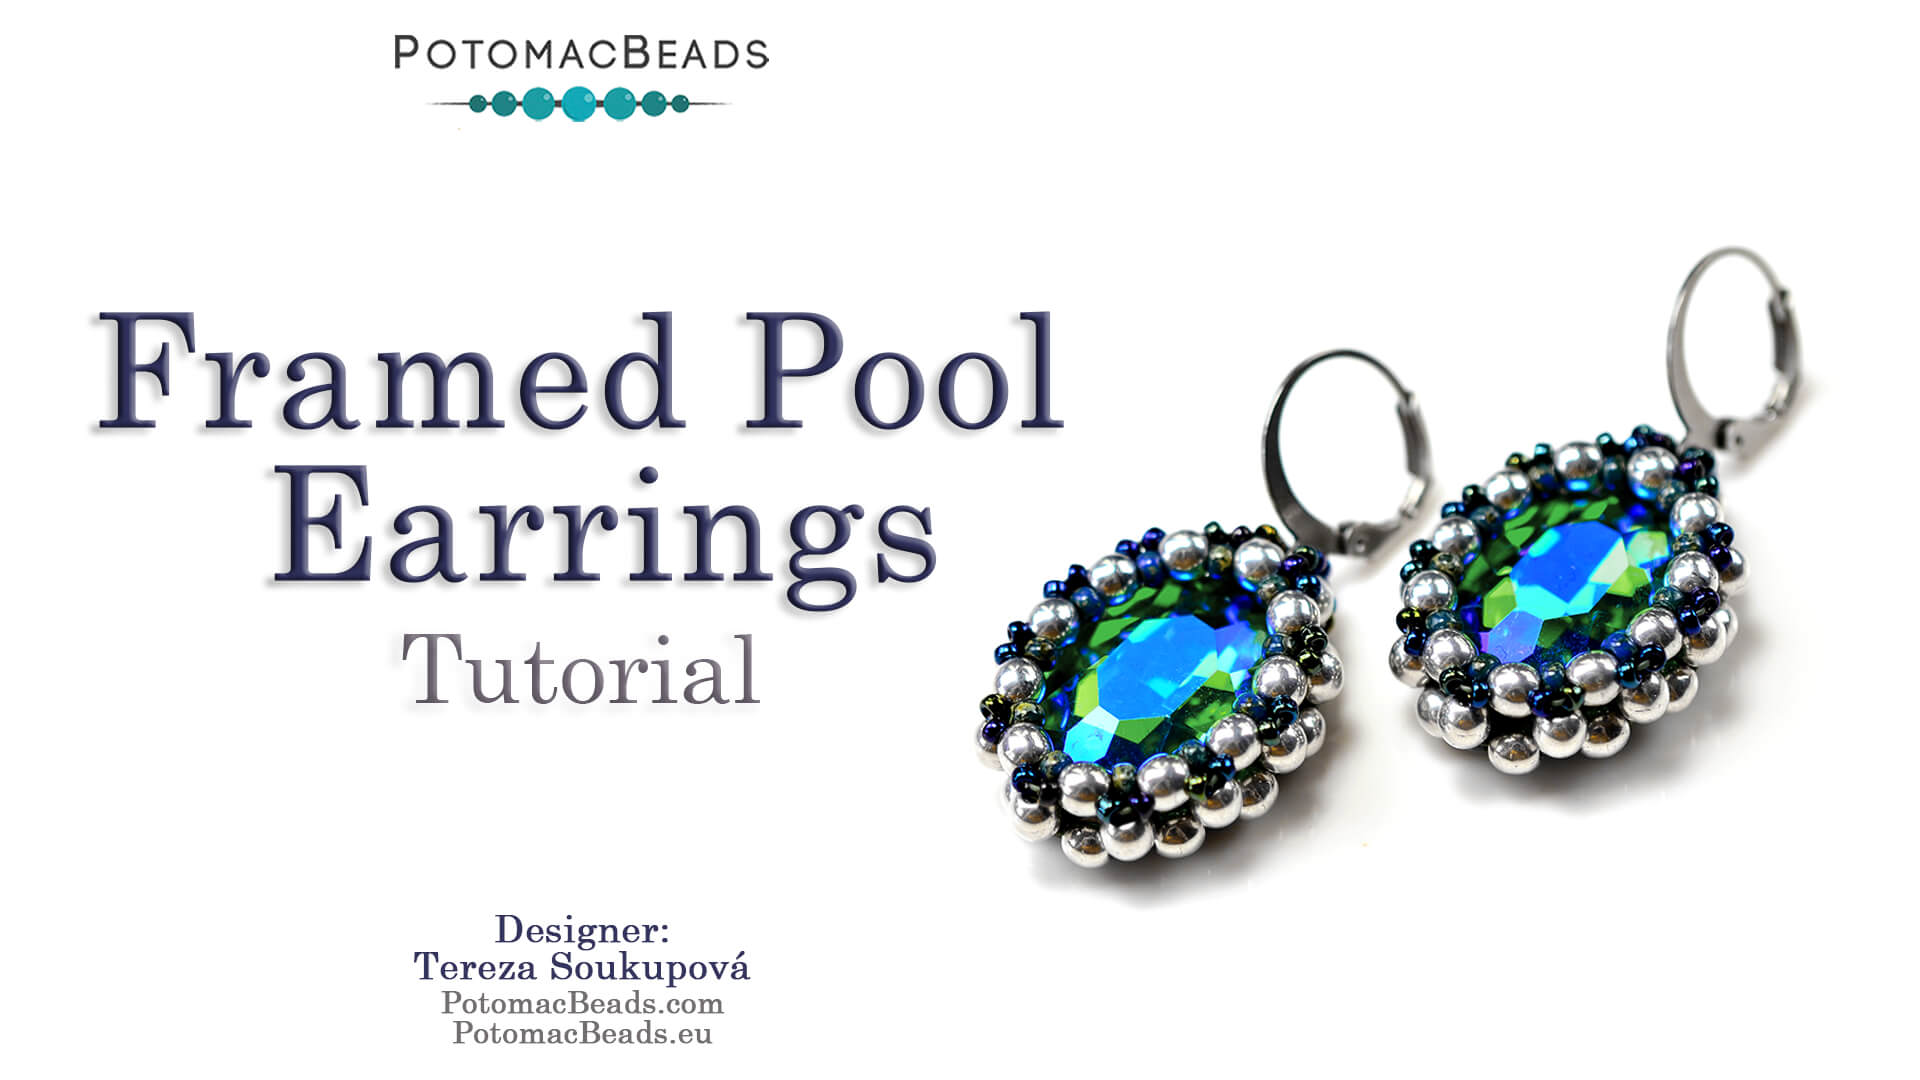 How to Bead Jewelry / Videos Sorted by Beads / All Other Bead Videos / Framed Pool Earrings Tutorial